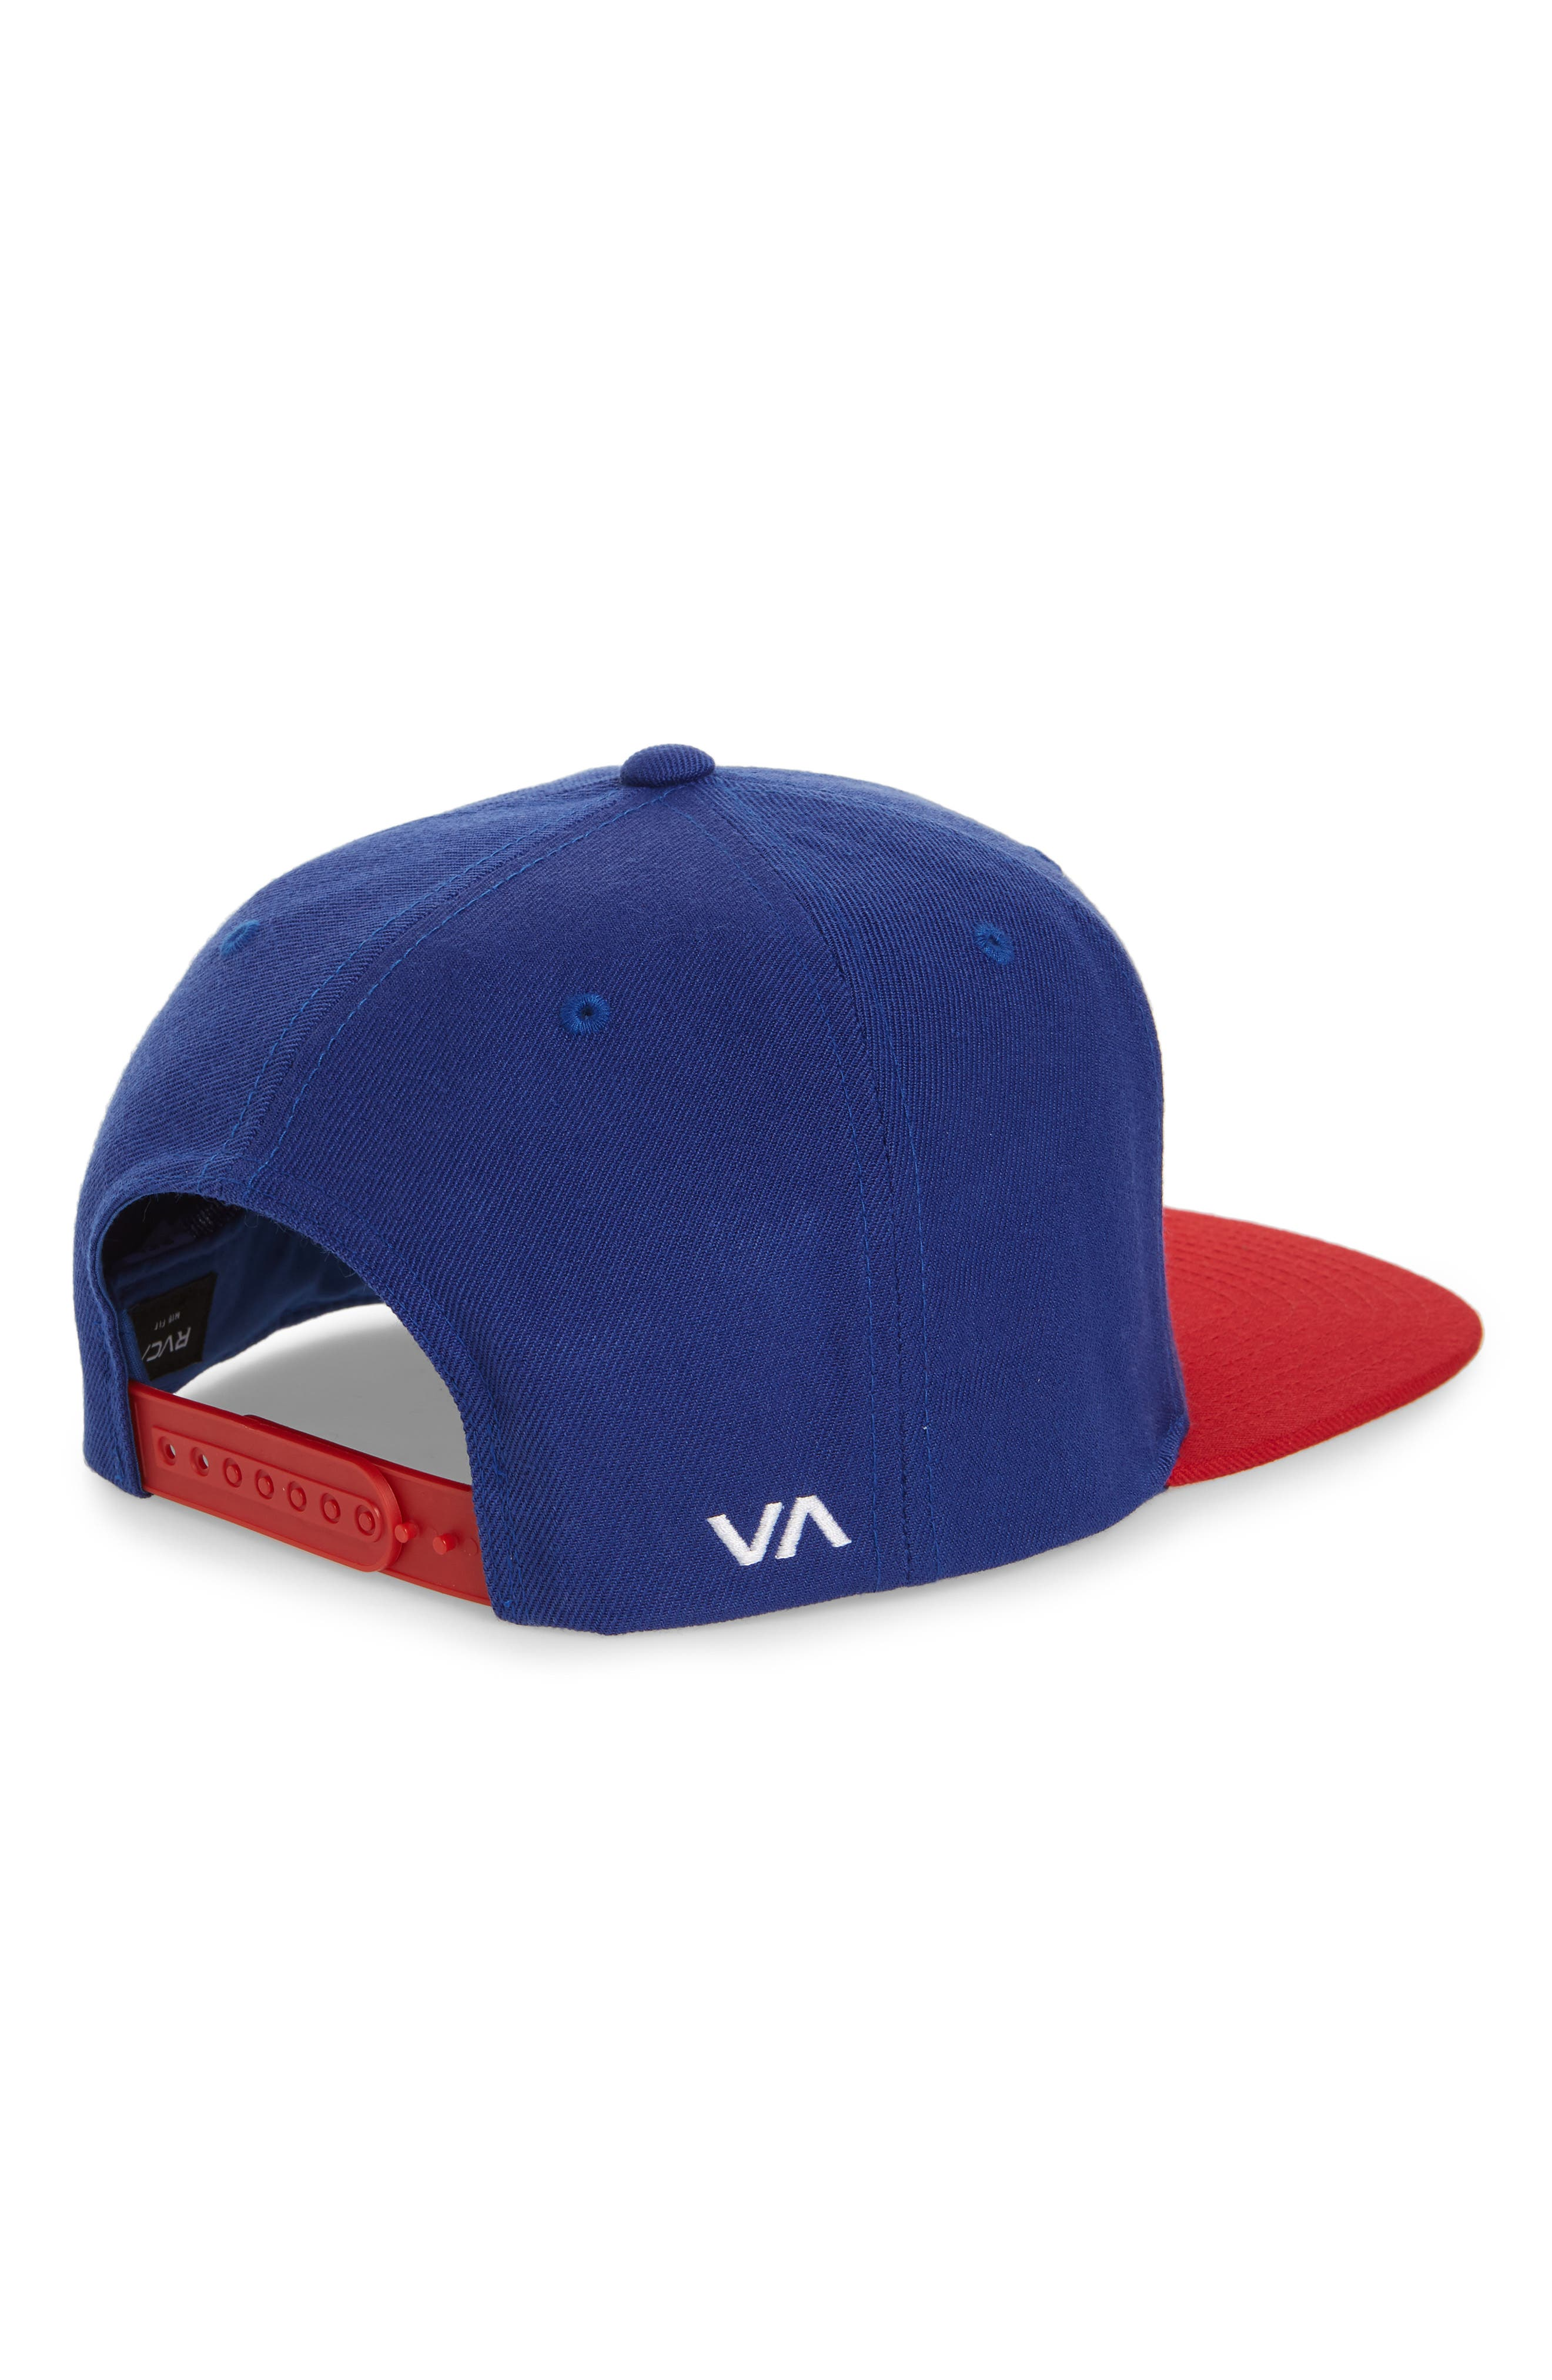 Twill Snapback Baseball Cap,                             Alternate thumbnail 2, color,                             Blue/ Red